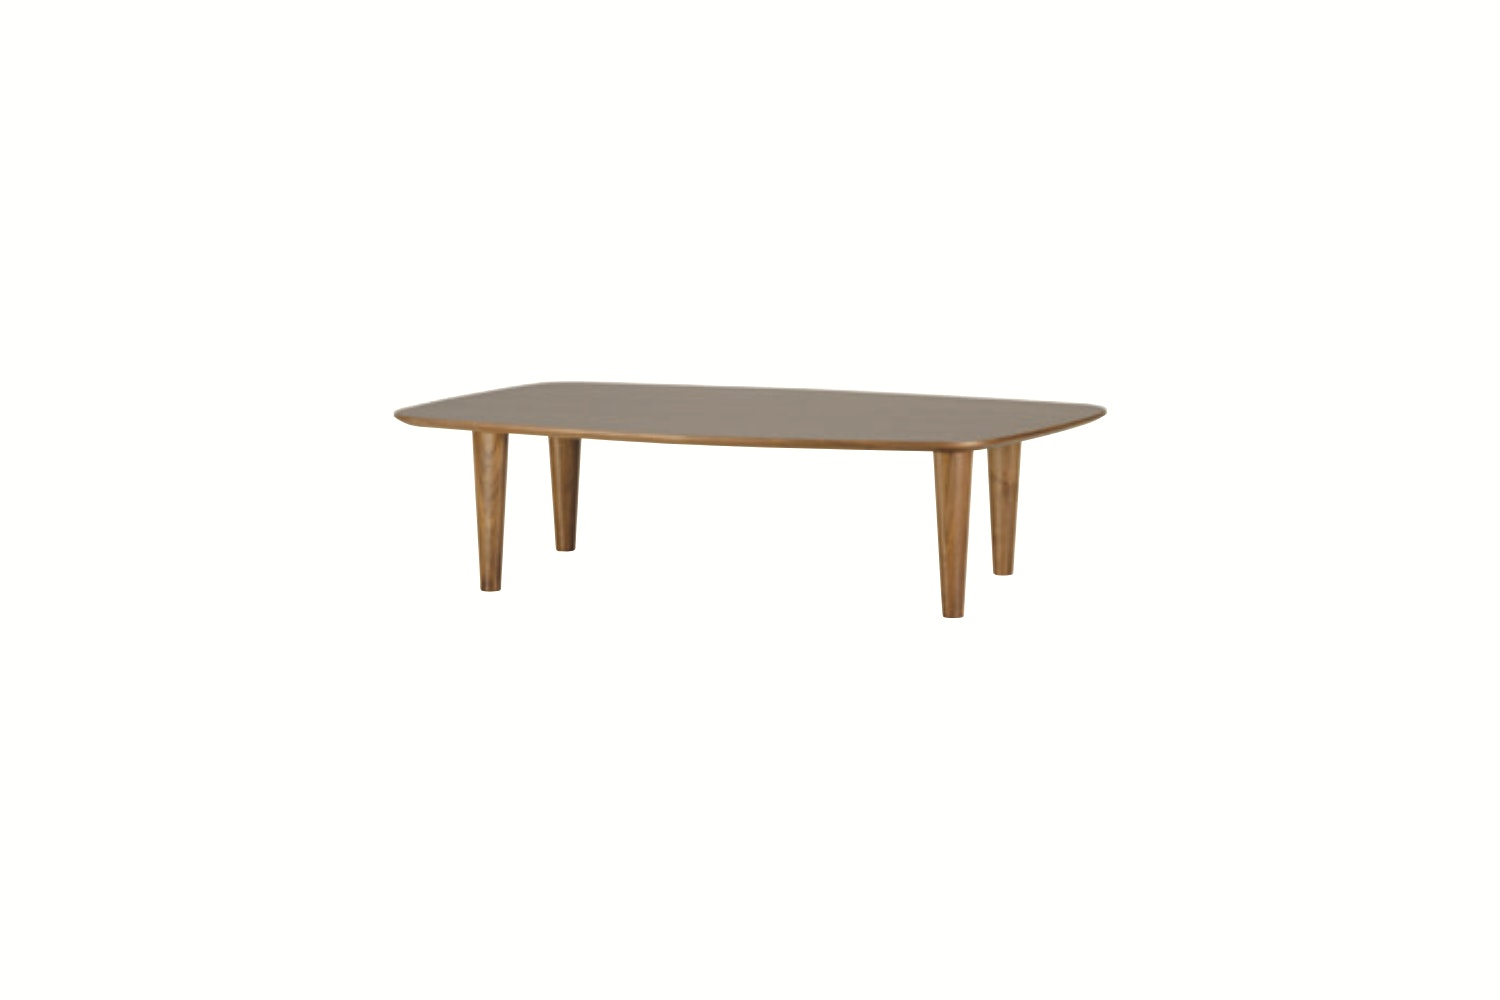 Albula Table by Antonio Citterio for Vitra